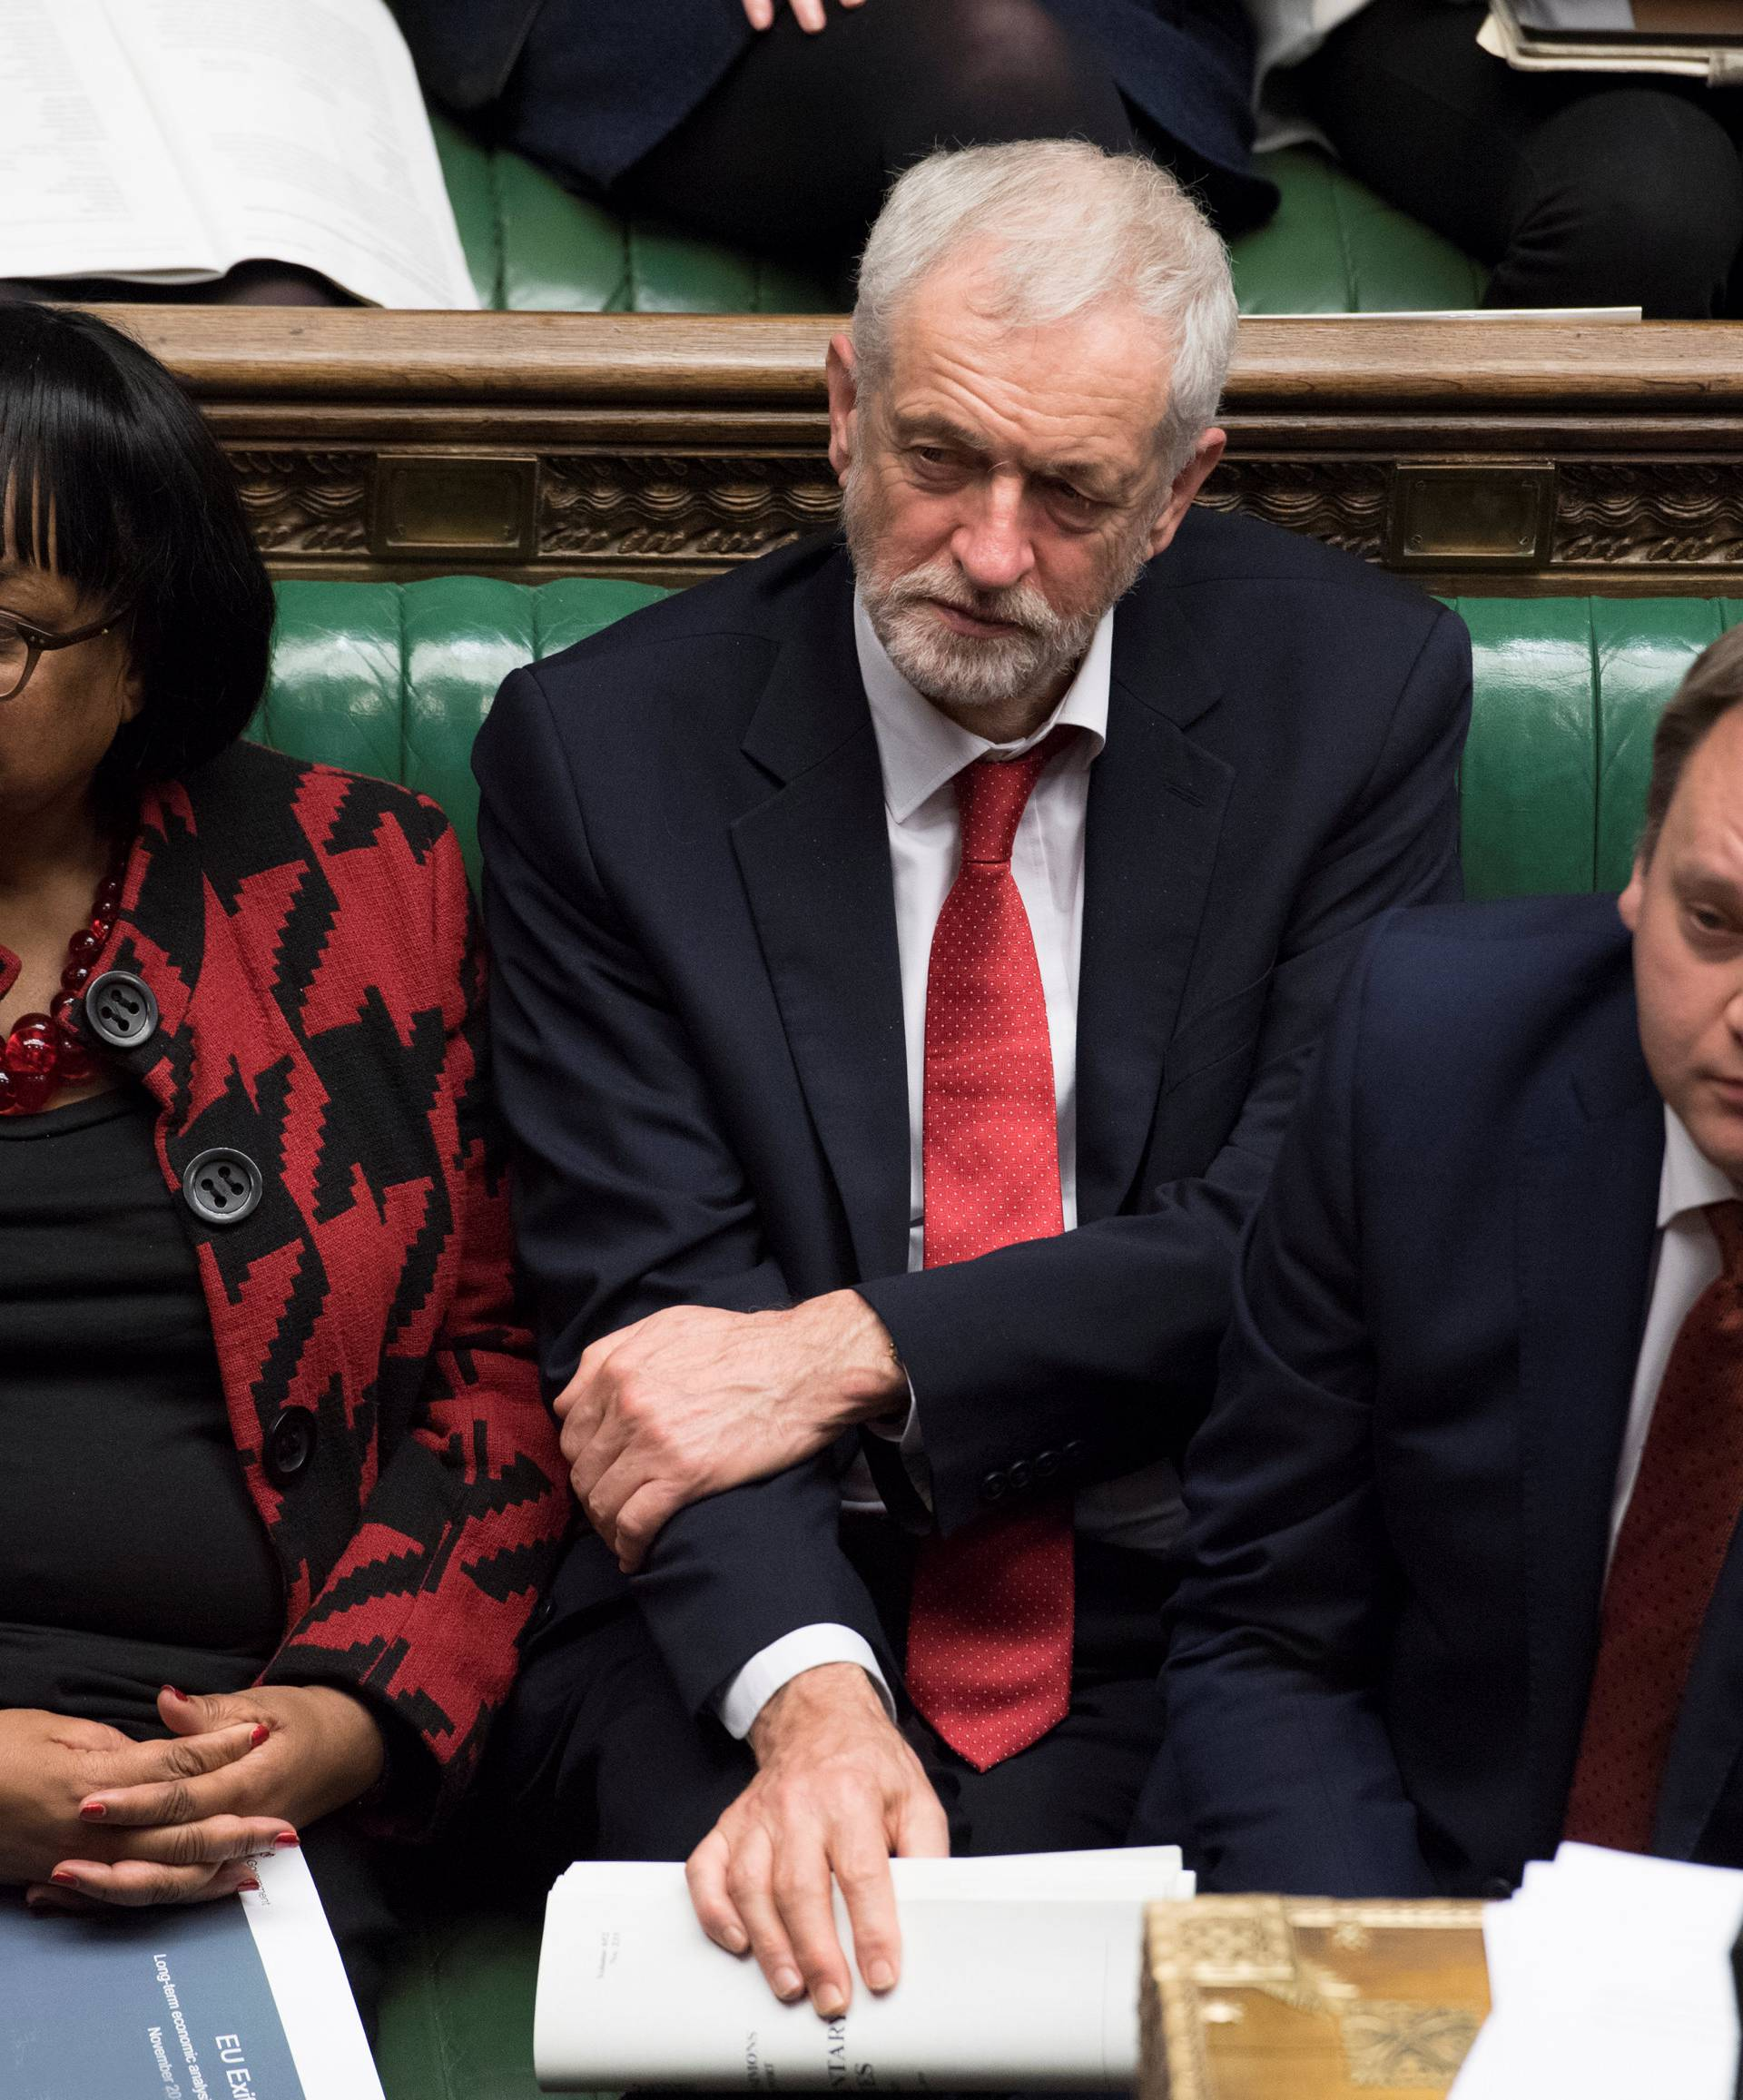 Britain's opposition Labour party leader Jeremy Corbyn attends the debate in Parliament ahead of the vote on British Prime Minister Theresa May's Brexit deal, in London